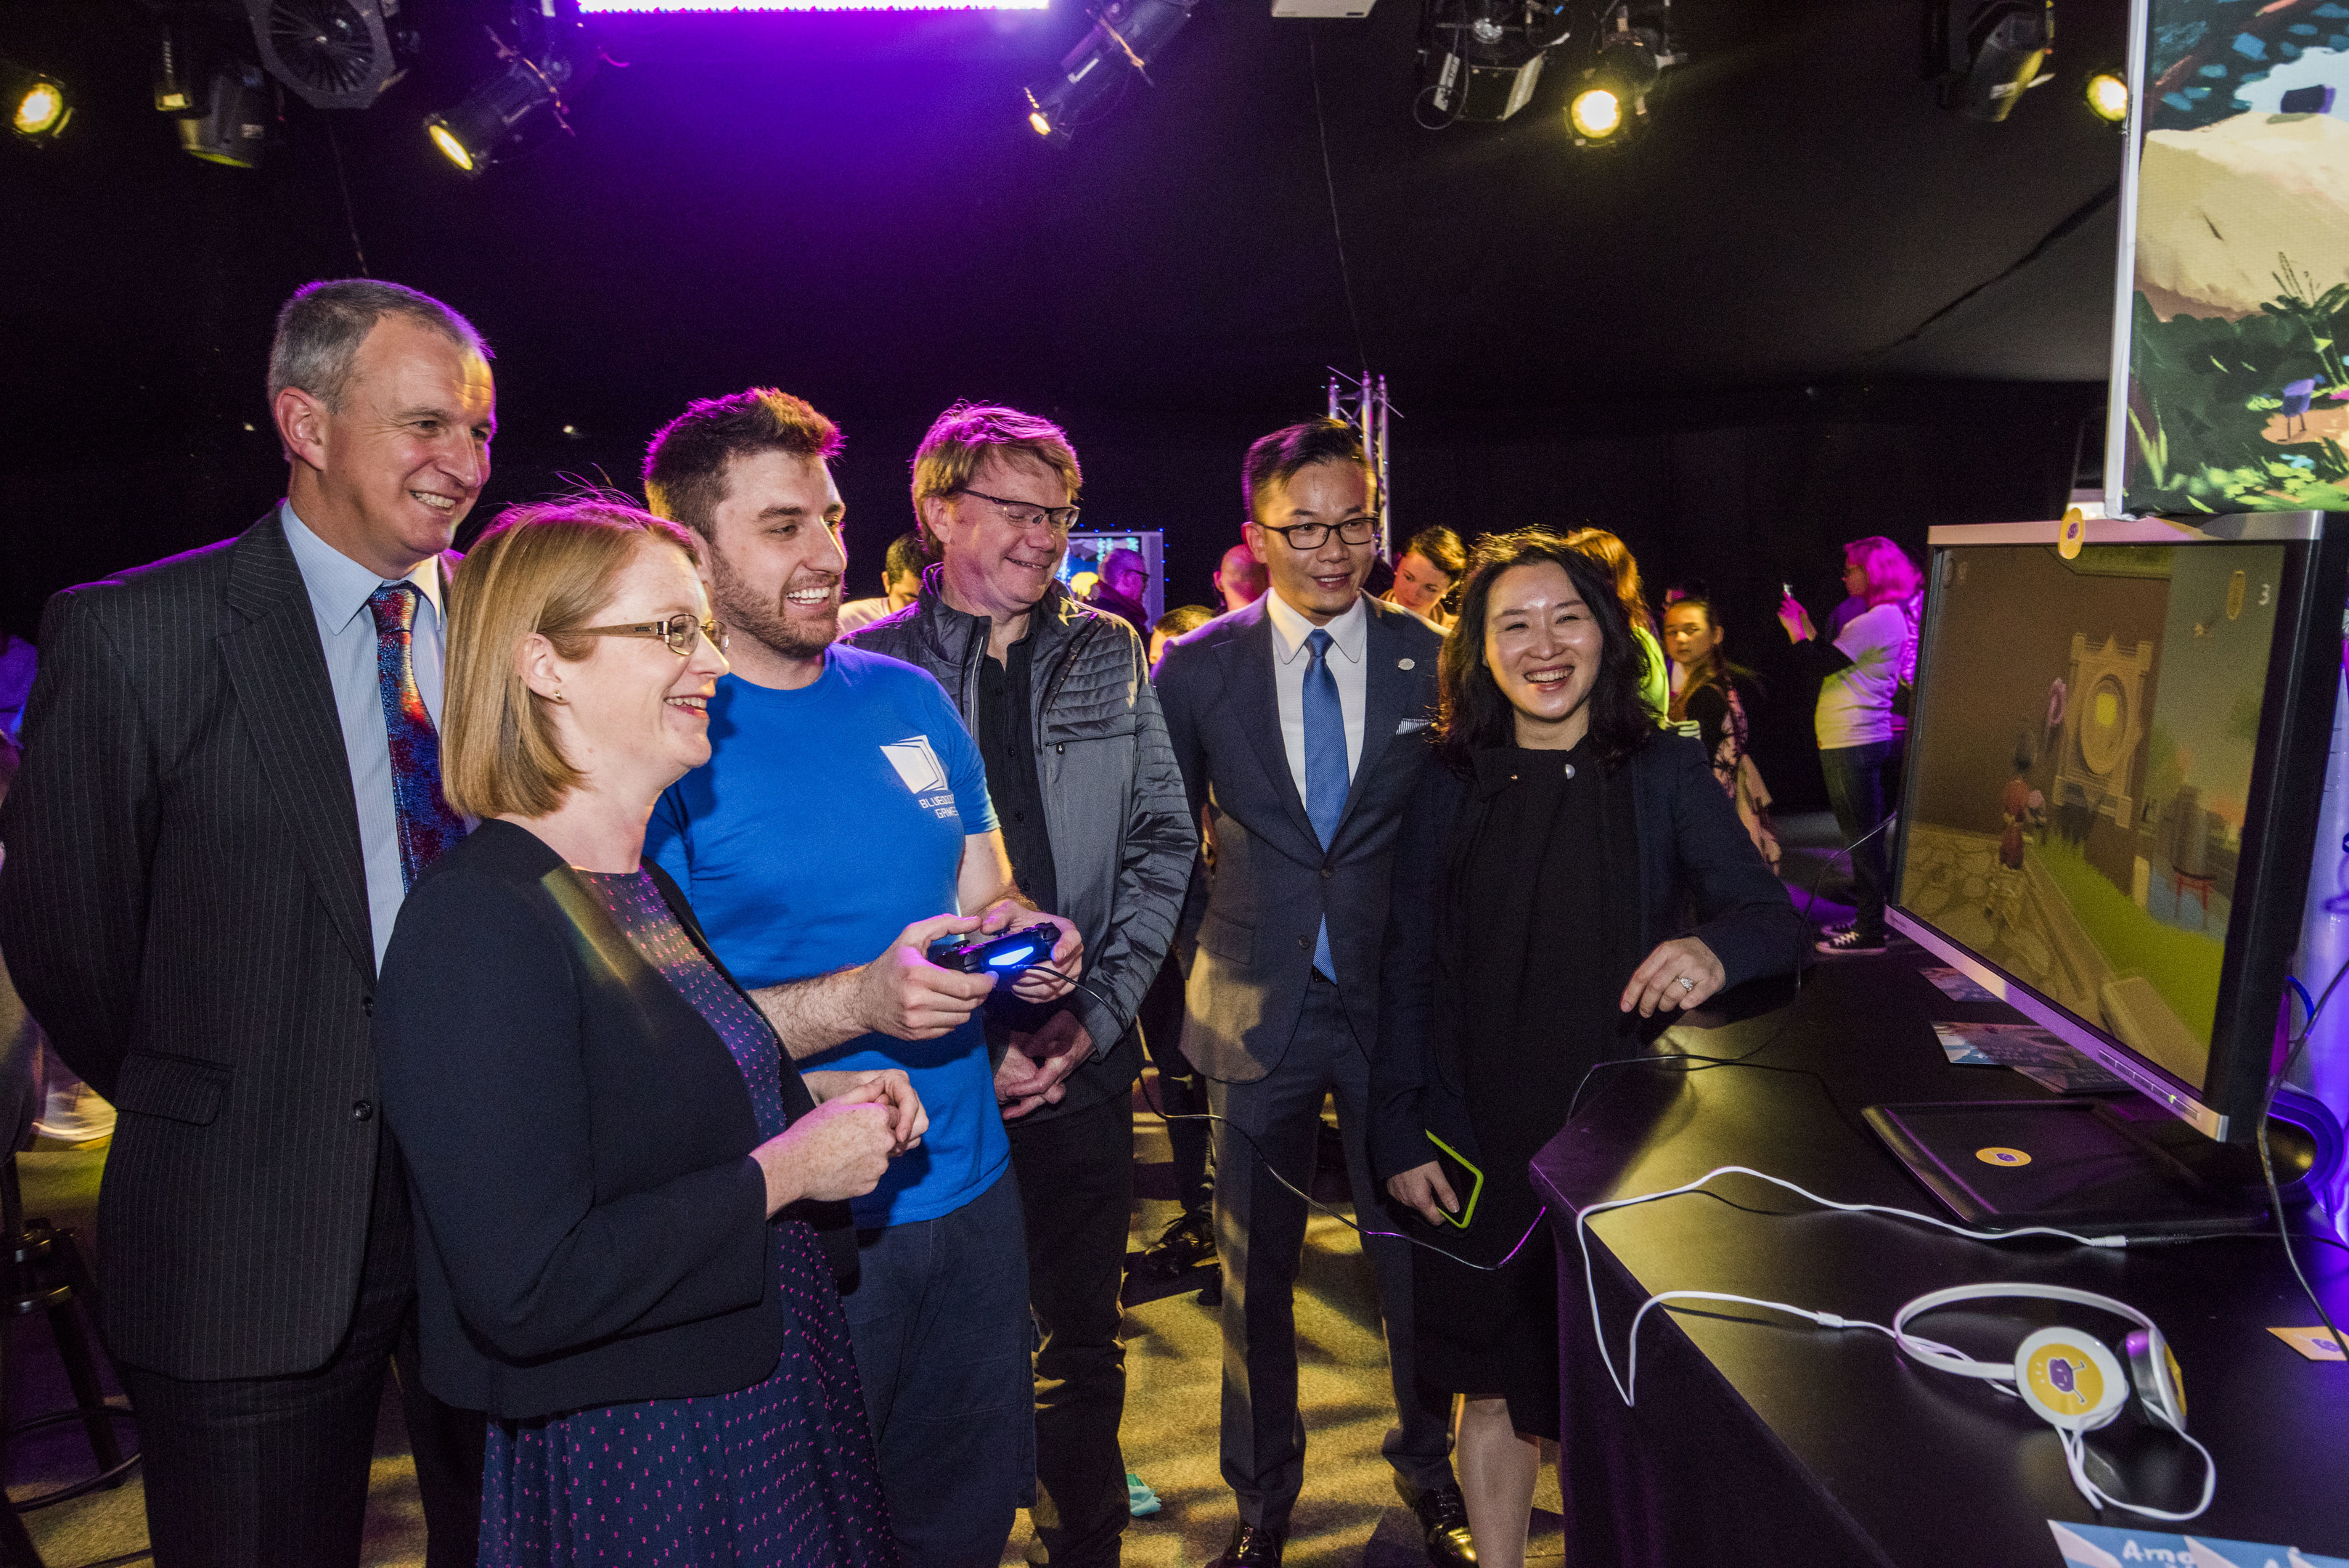 Nigel Seaton, principal of Abertay University, Shirley-Anne Somerville MSP, Lukasz Gomula, Dave Jones, creative director of Reagent Games, Kai Hu, deputy general manager of Perfect World, and Wang Yuyun, senior vice-president of Perfect World, at Thursday's launch.